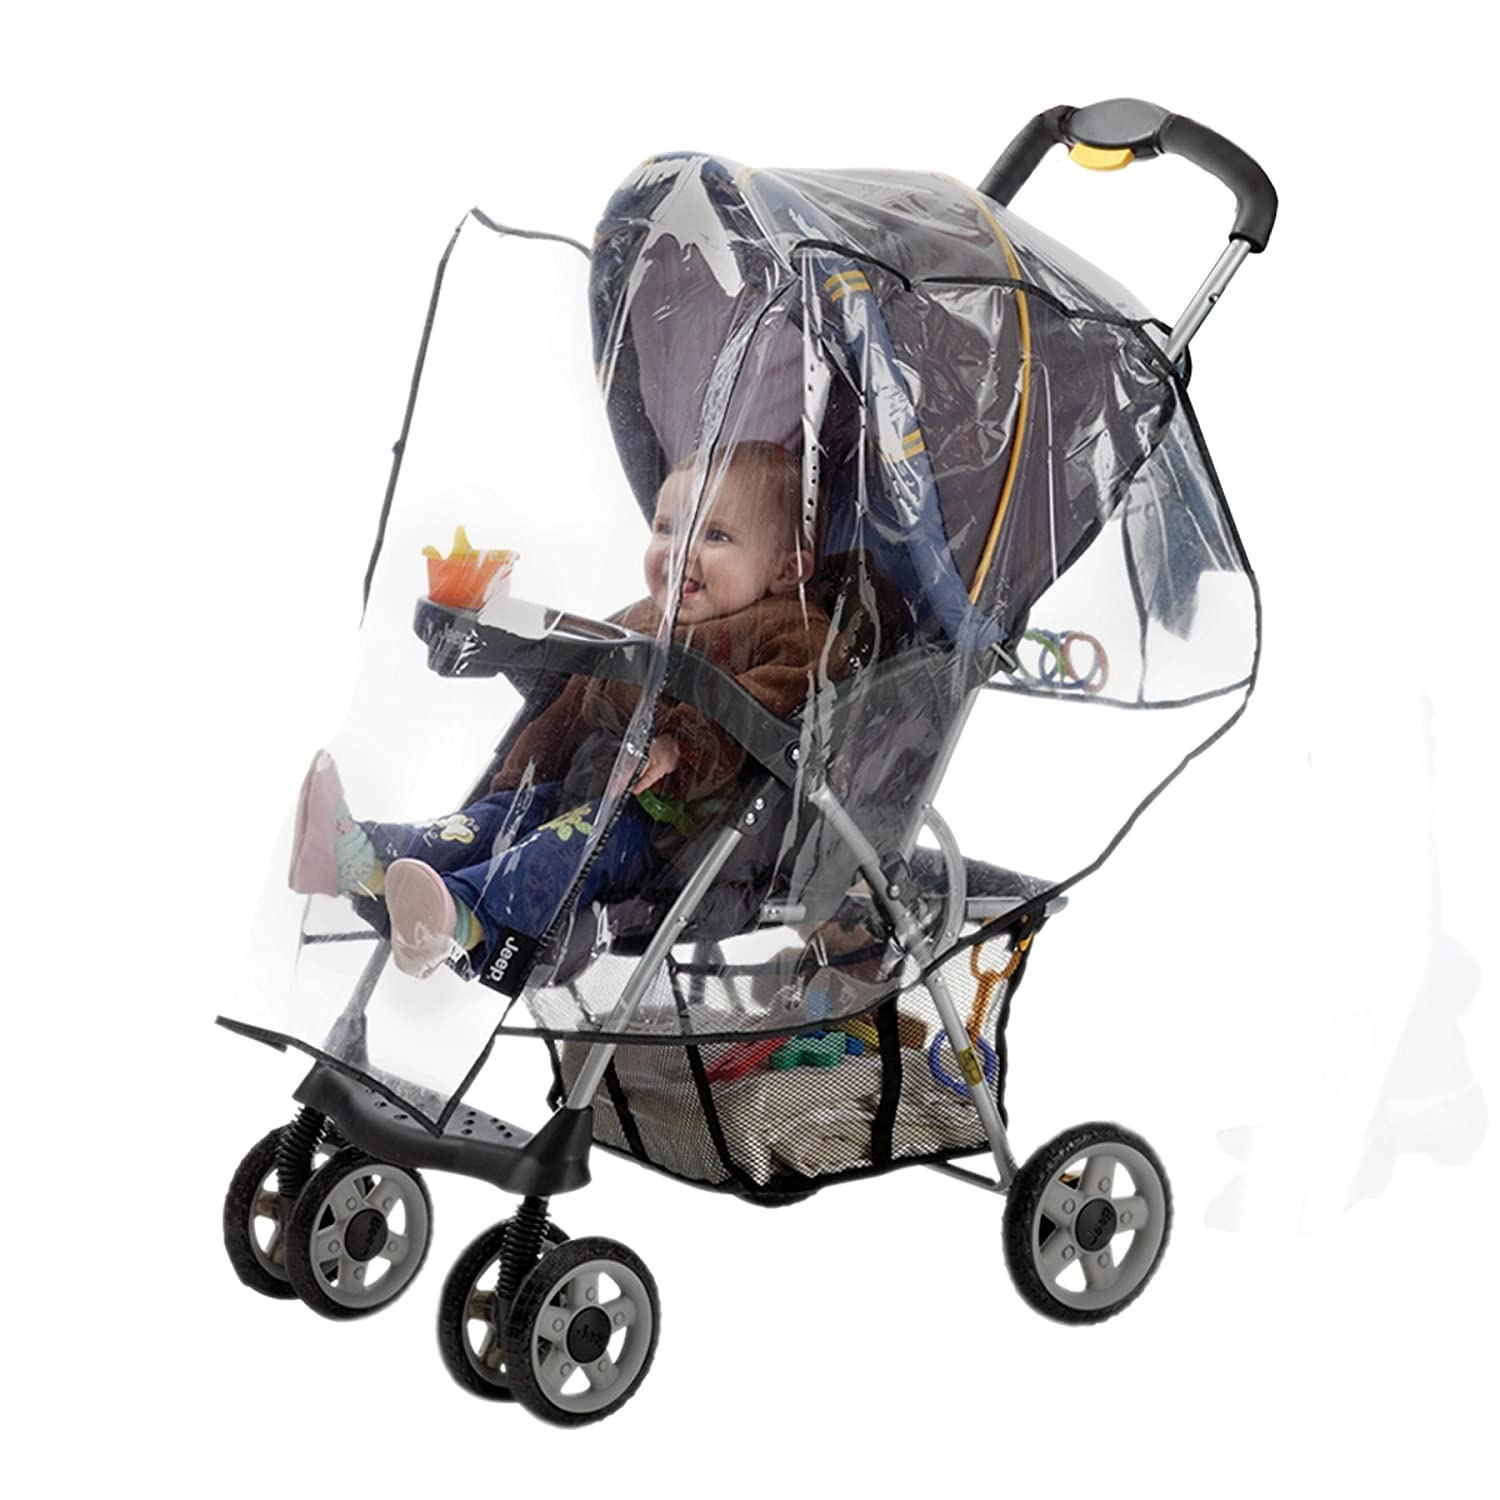 Jeep Standard Stroller Rain Cover, Stroller Rain Cover, Baby Rain Cover, Stroller Accessories, Stroller Weather Shield, Universal Size, Waterproof, Windproof, Ventilation, Clear Vinyl Plastic HIS Juveniles 90111R